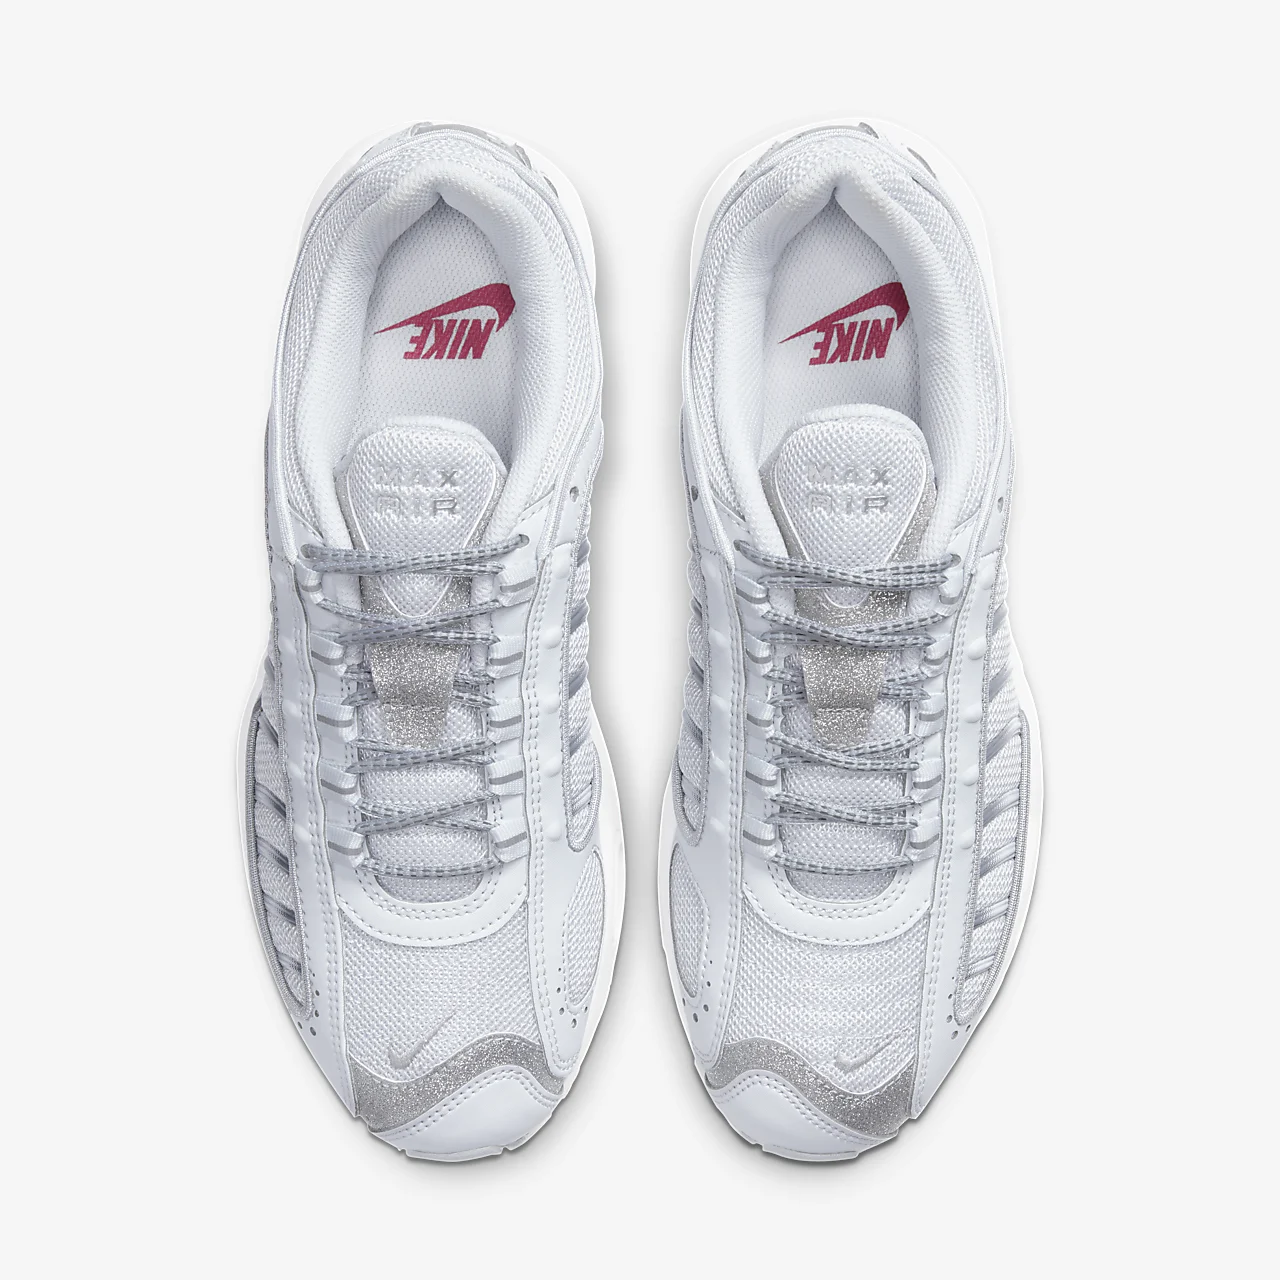 유럽직배송 나이키 NIKE Nike Air Max Tailwind IV Women's Shoe CT3431-001